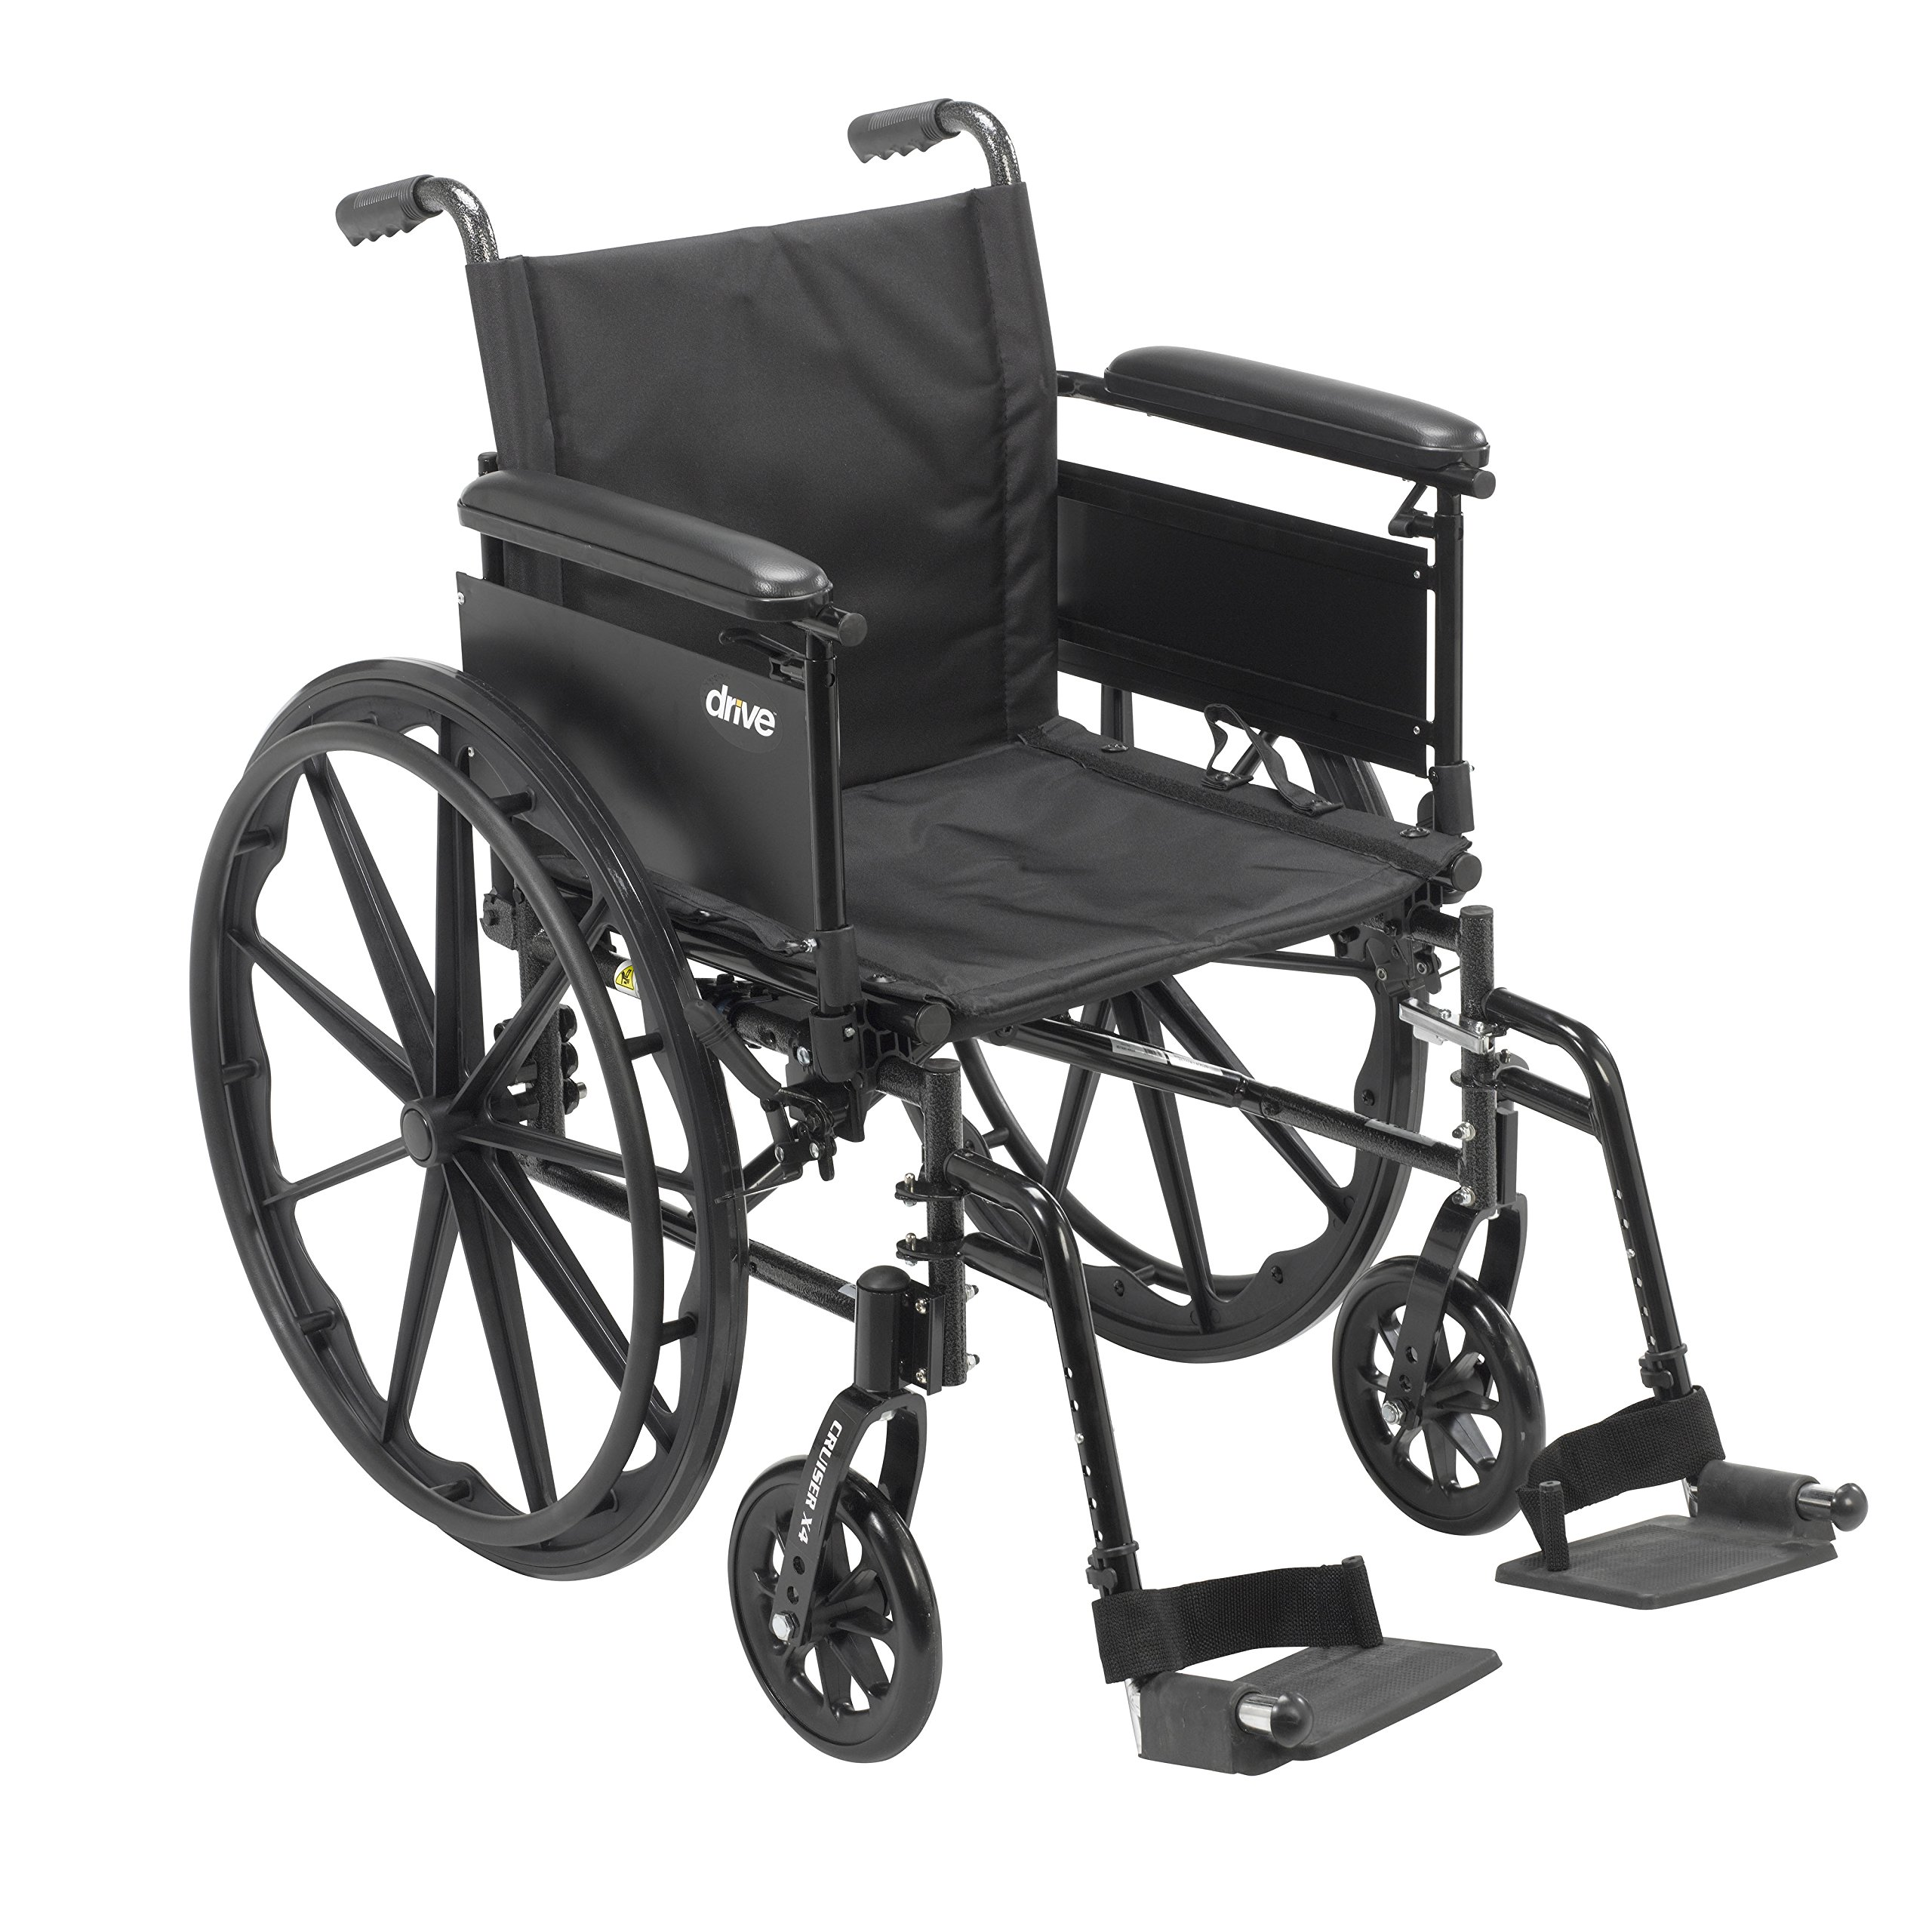 Drive Medical Cruiser X4 Lightweight Dual Axle Wheelchair with Adjustable Detachable Arms, Full Arms, Swing Away Footrests, 18'' Seat